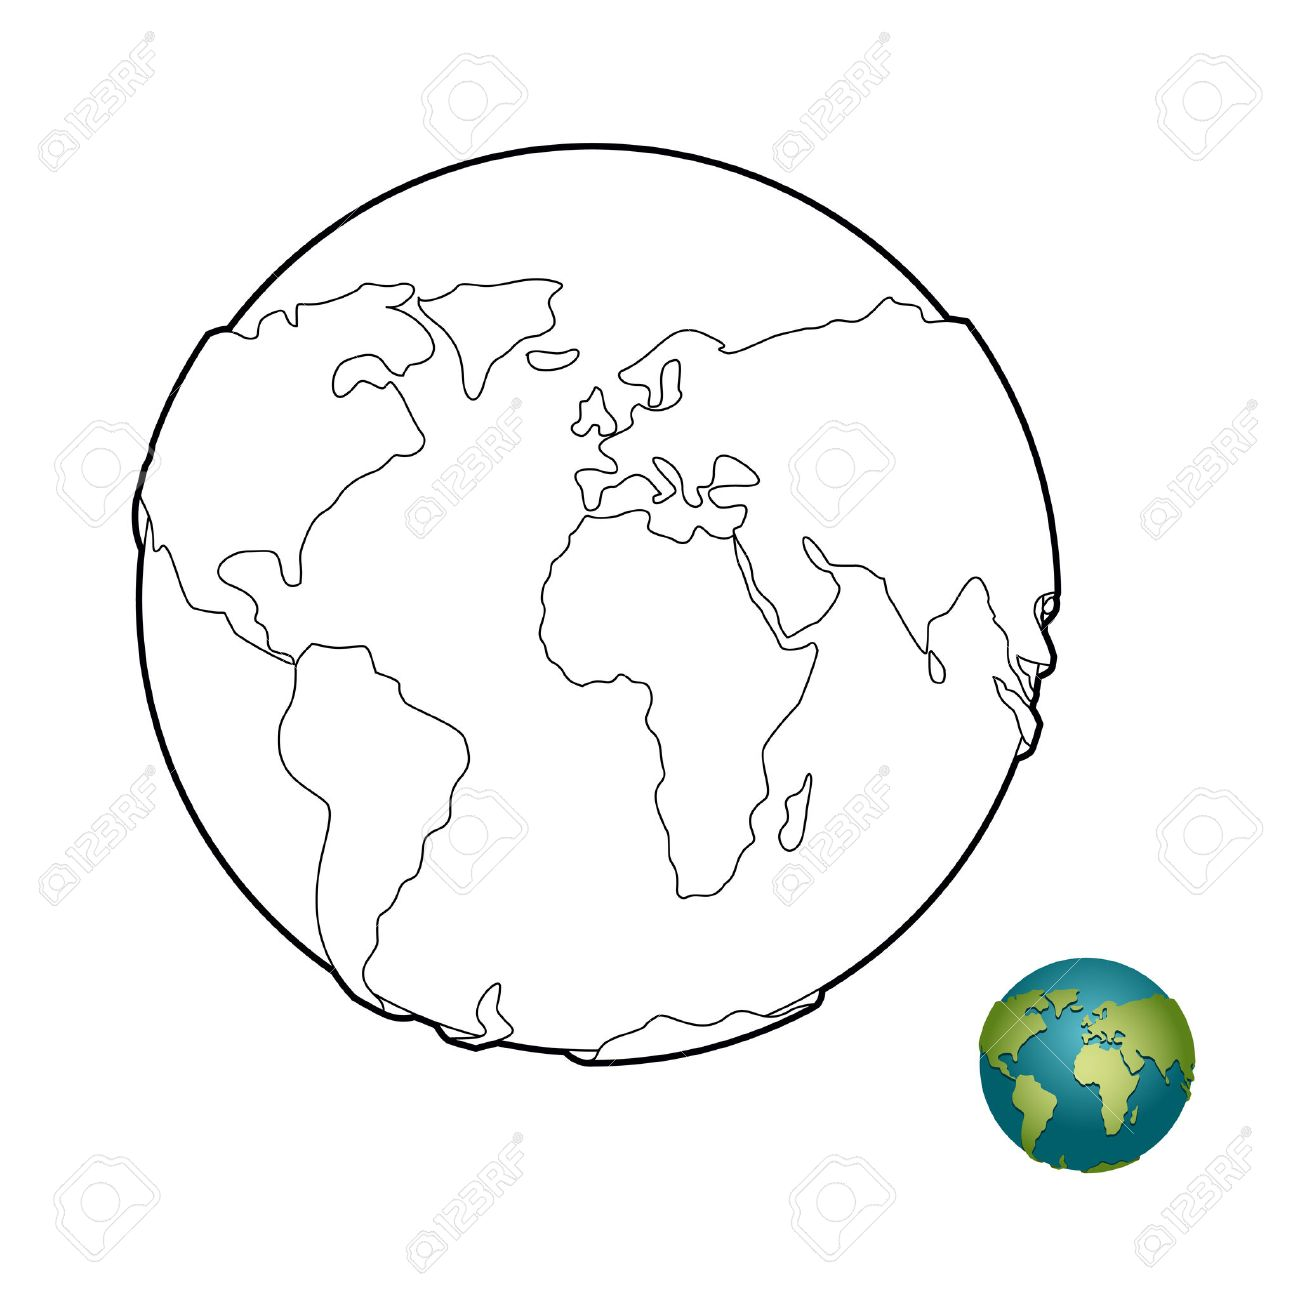 Earth coloring book. Heavenly body. Planet with mainlands. Globe..